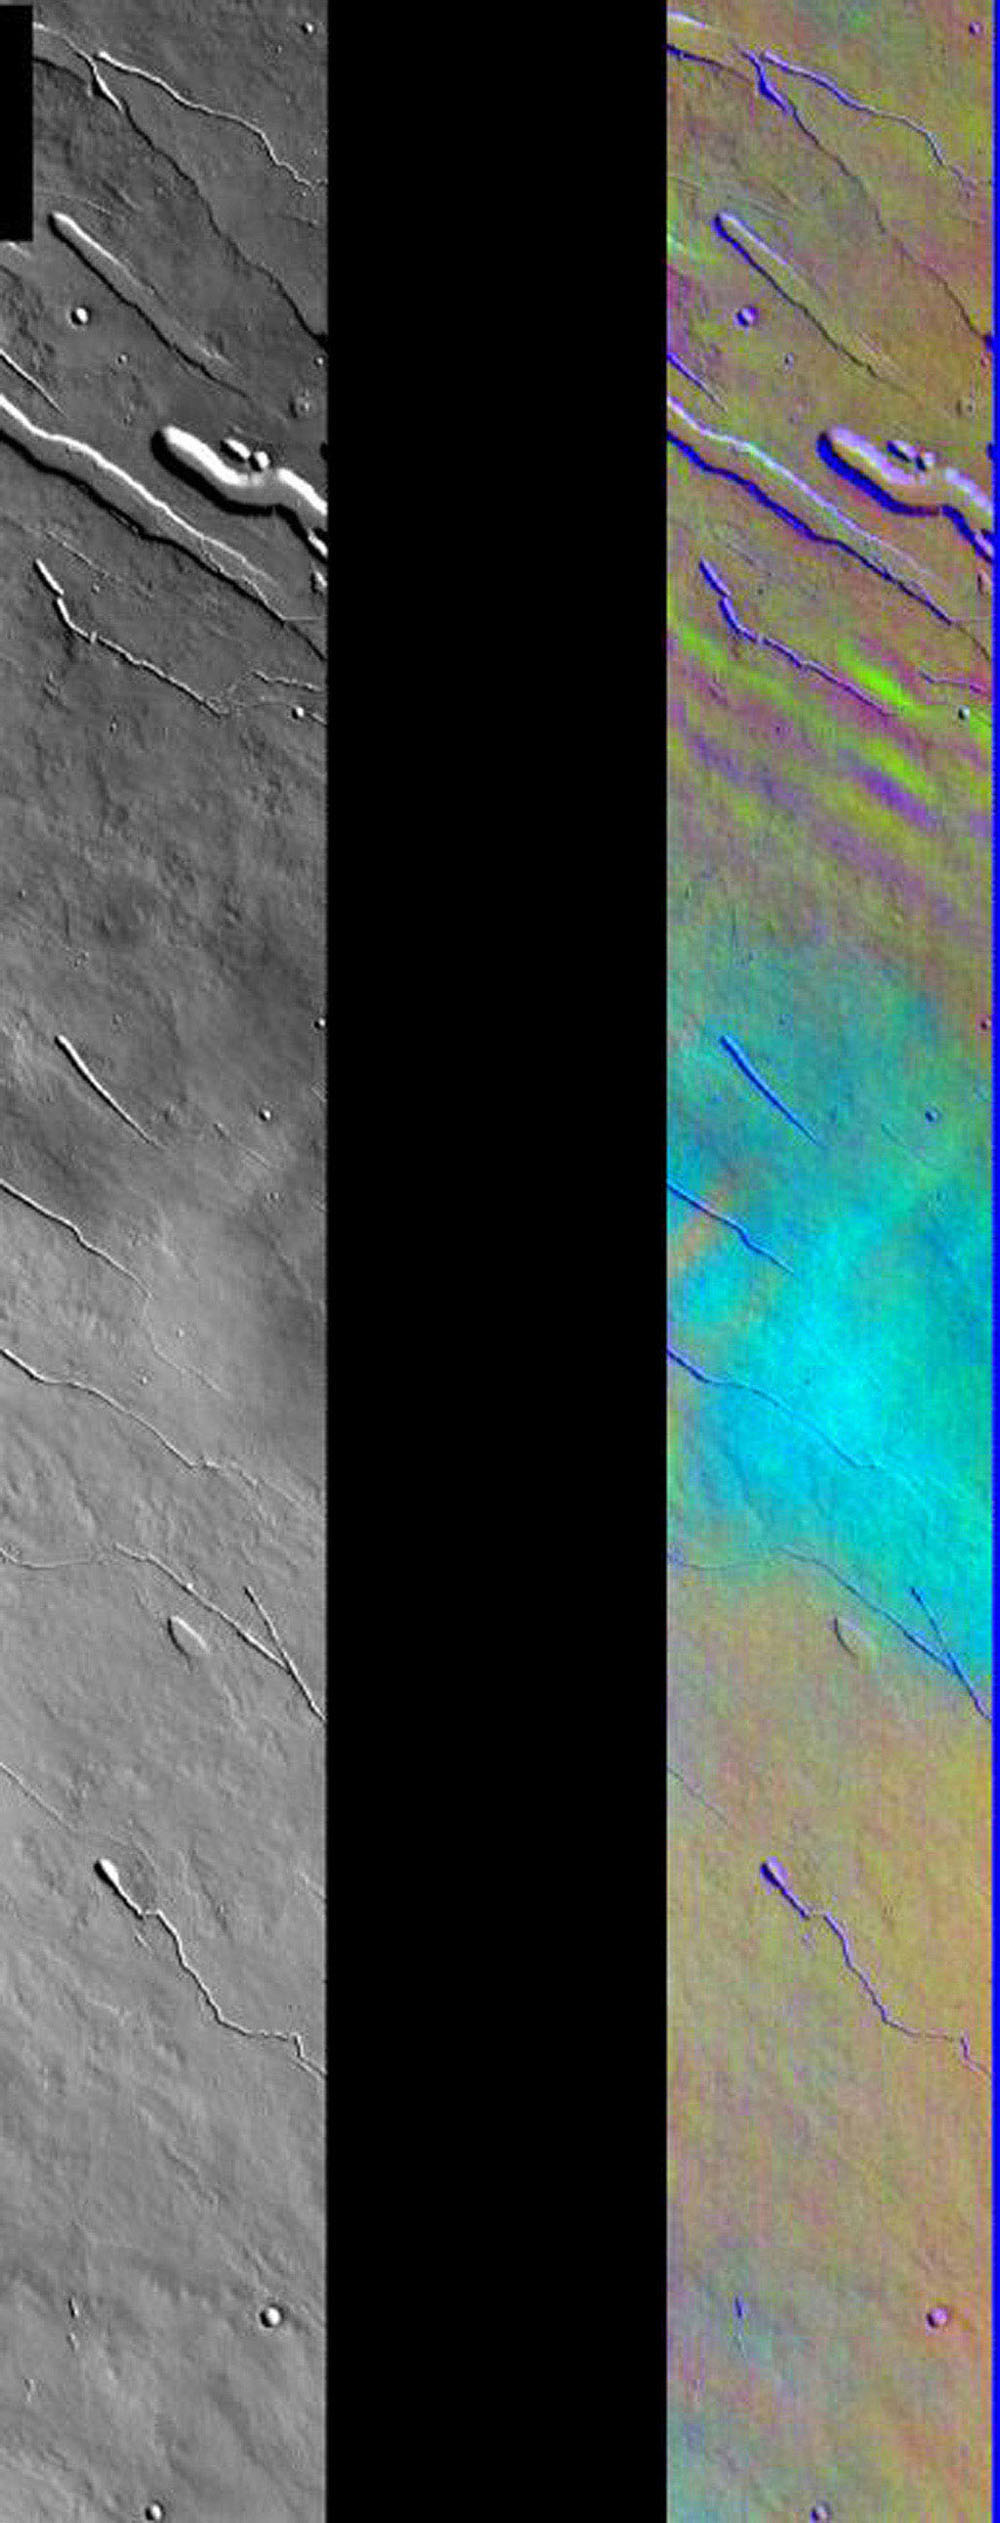 This image released on August 9, 2004 from NASA's 2001 Mars Odyssey shows a decorrelation stretch of the Elysium region. Pink/magenta colors usually represent basaltic dunes, cyan indicates the presence of water ice clouds, while green can represent dust.